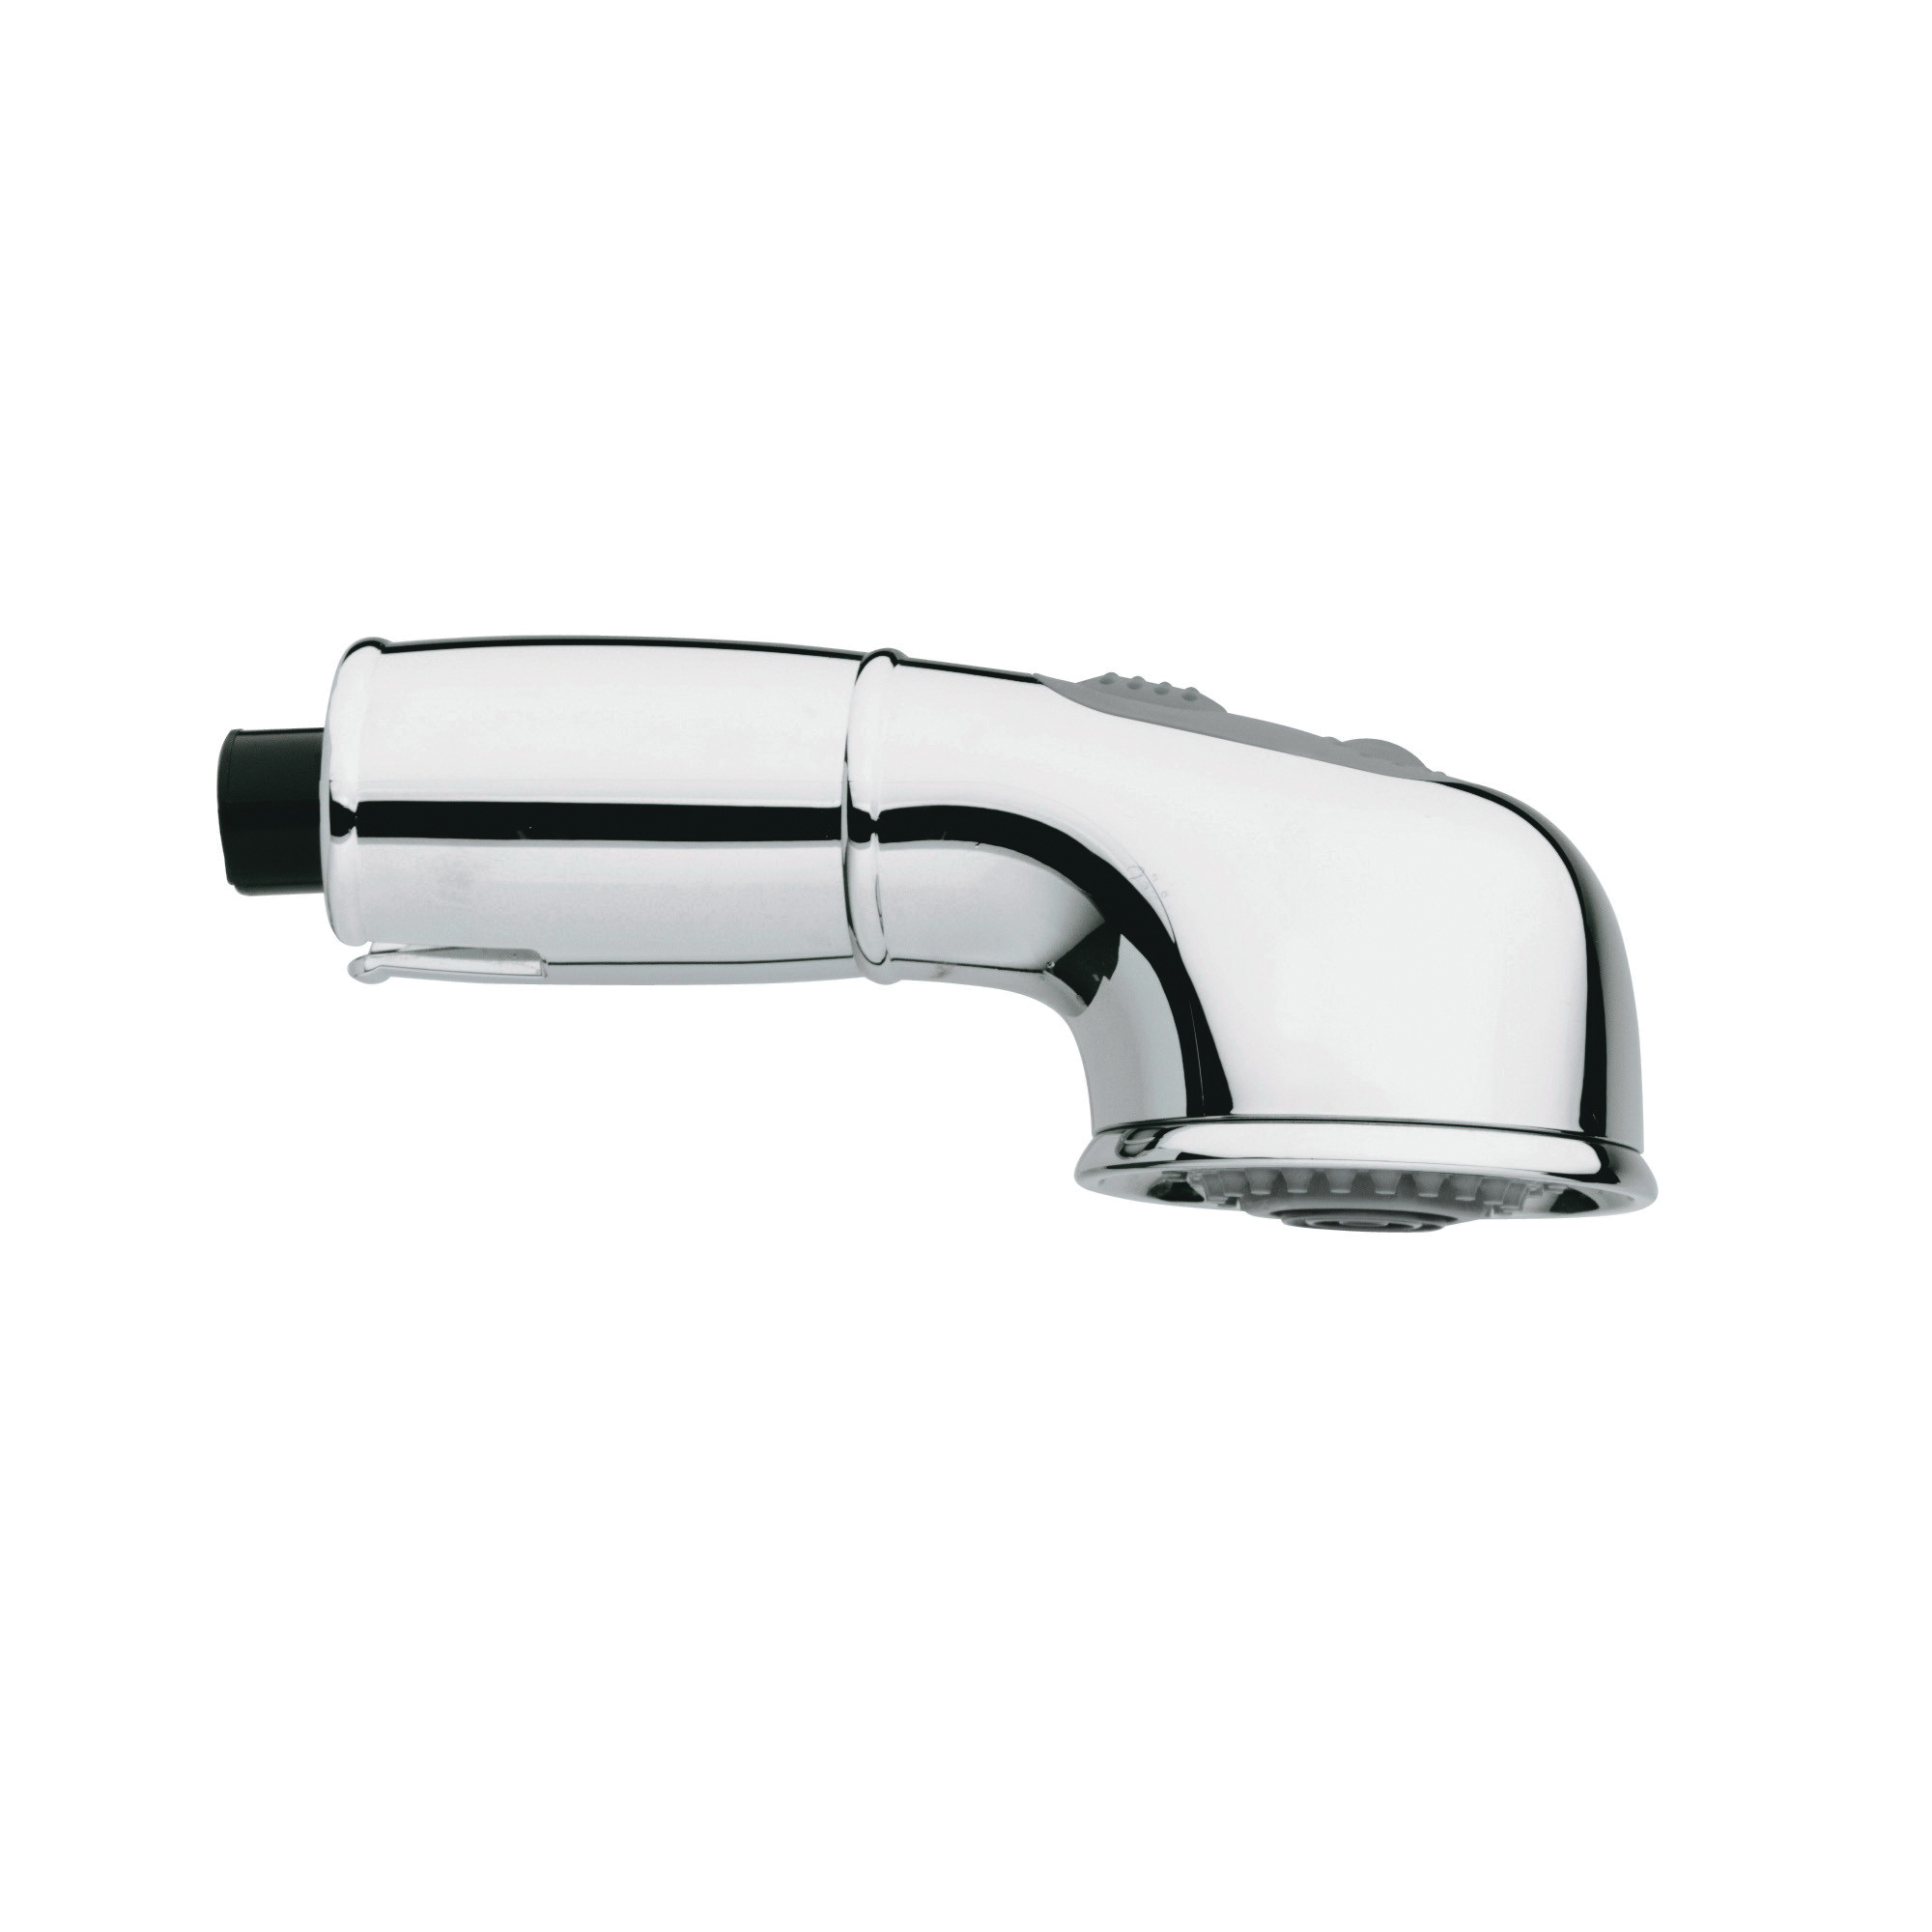 GROHE 12475000 Ashford Pull-Out Spray, StarLight® Chrome Head, Import